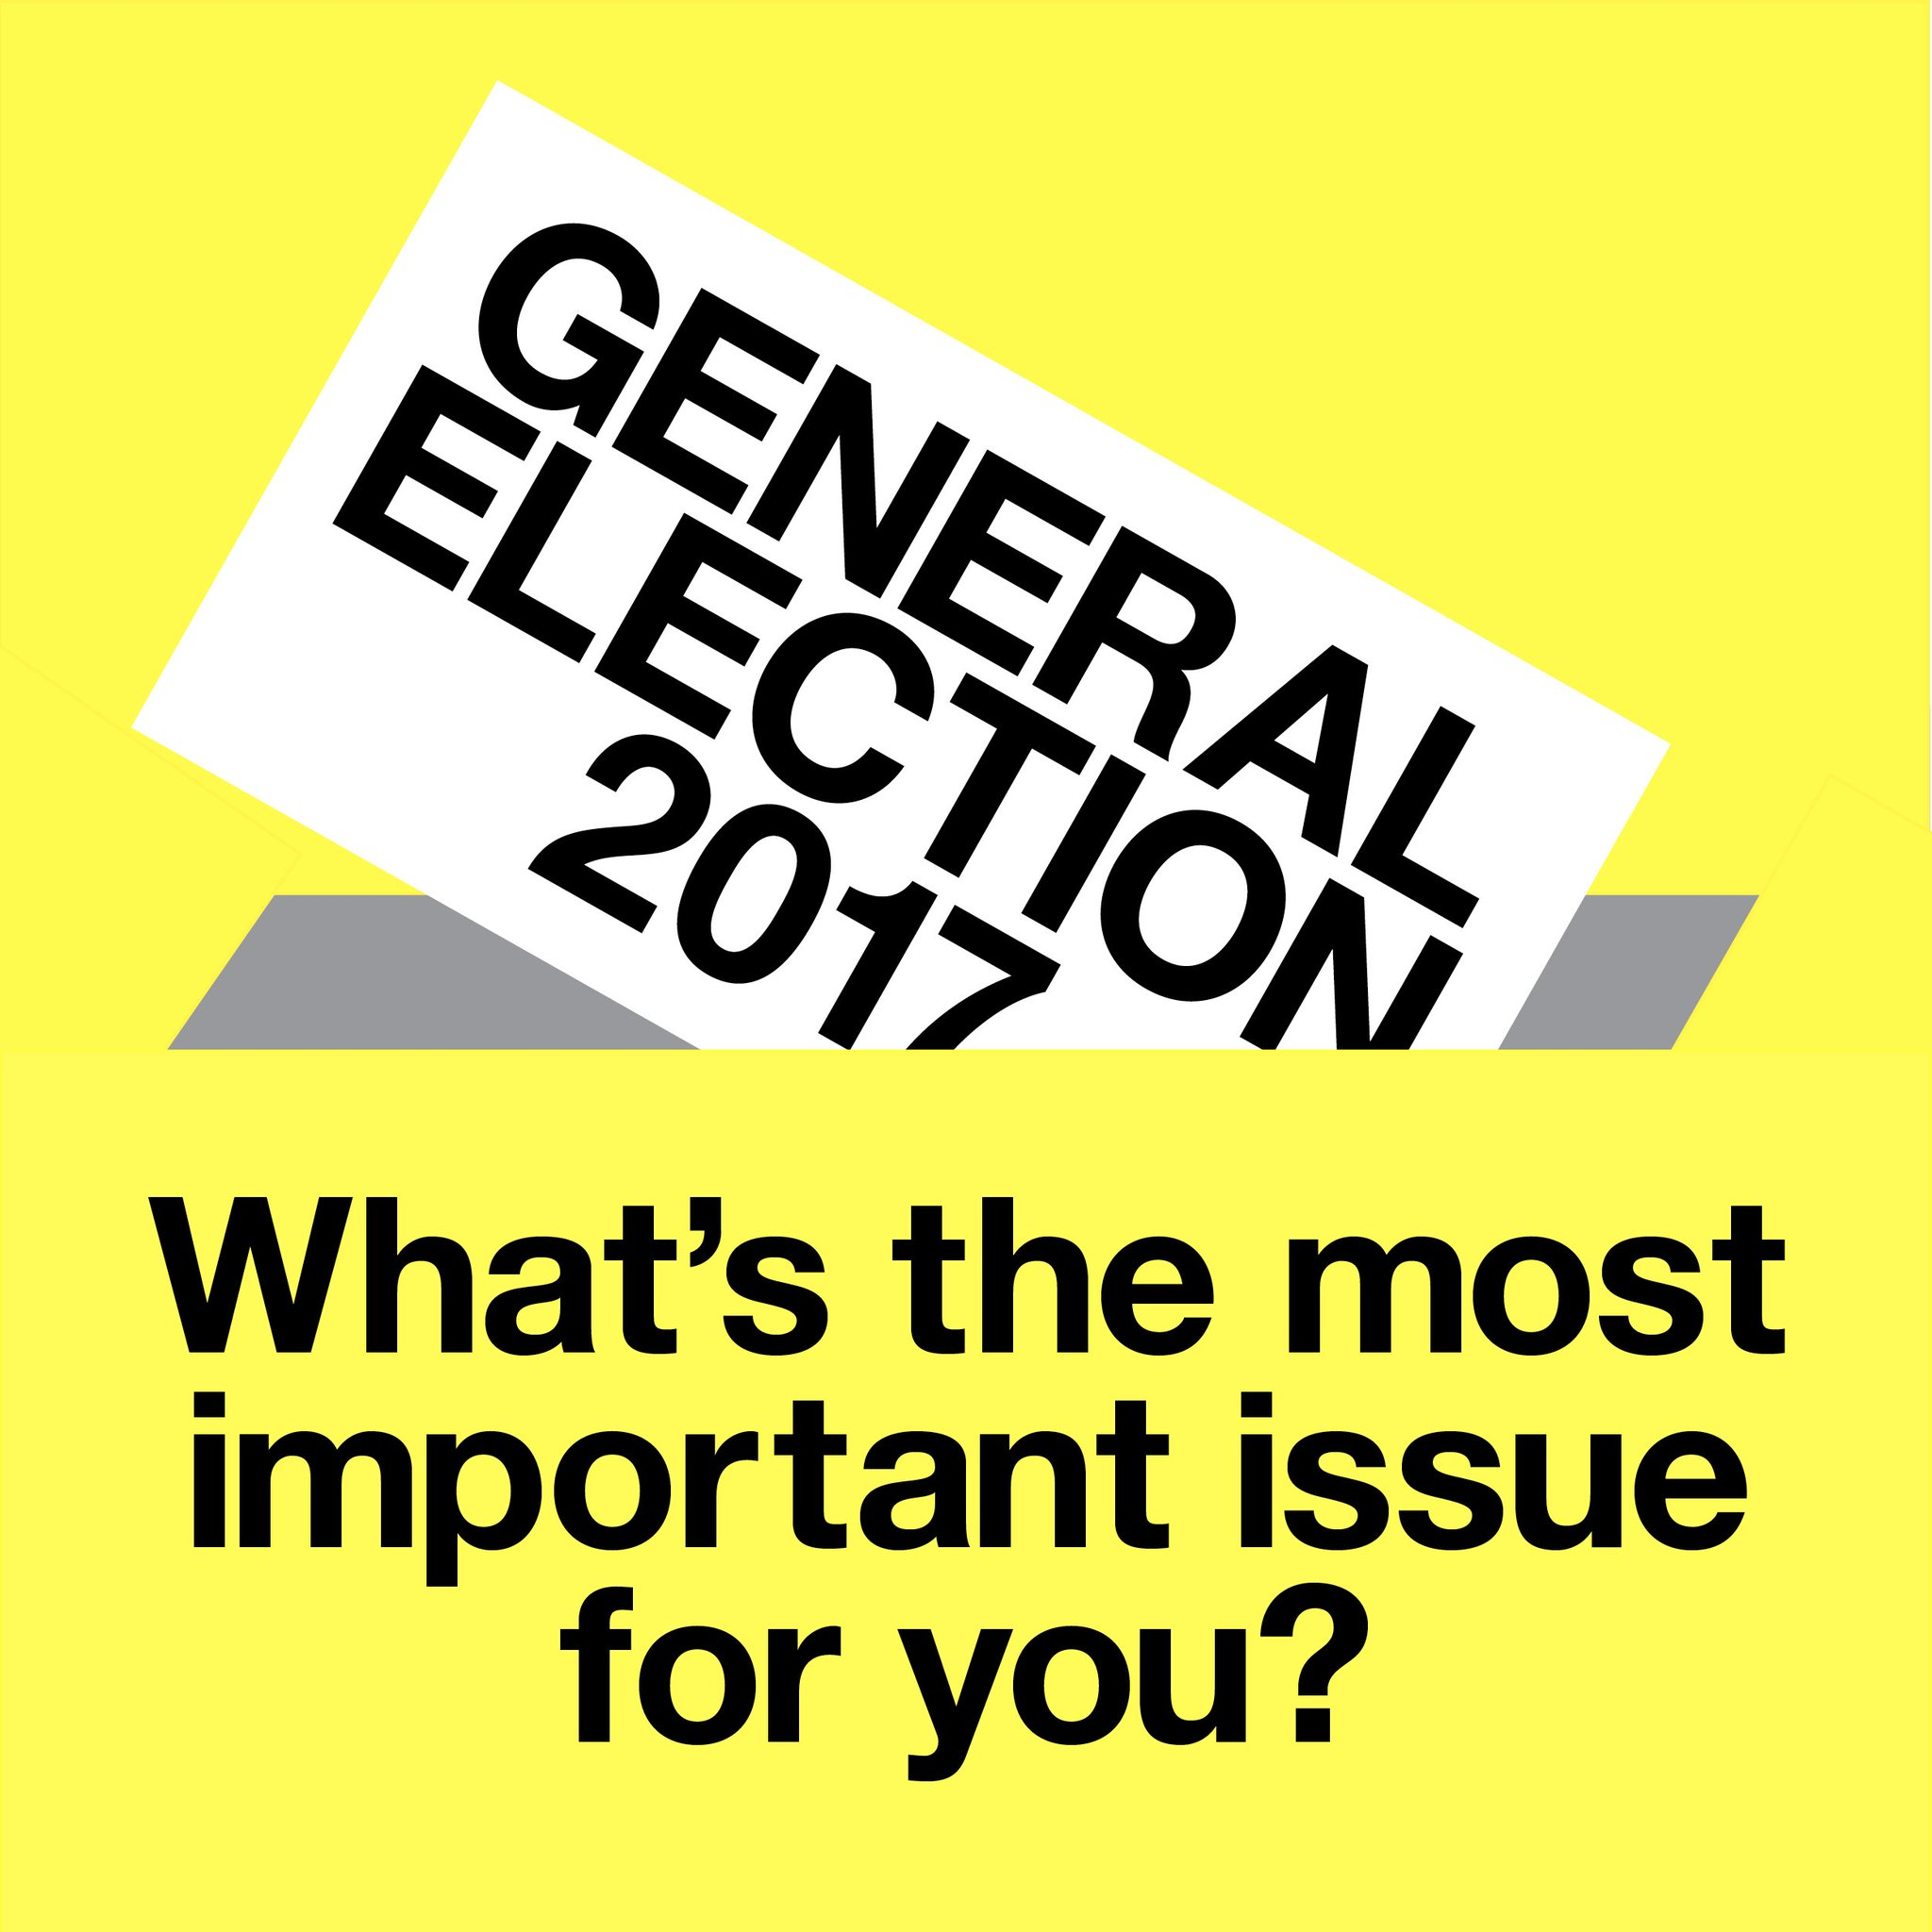 The NHS? Brexit? Housing? Let us know what vital issue is most important for you #GE2017 https://t.co/JFacjPKjKL